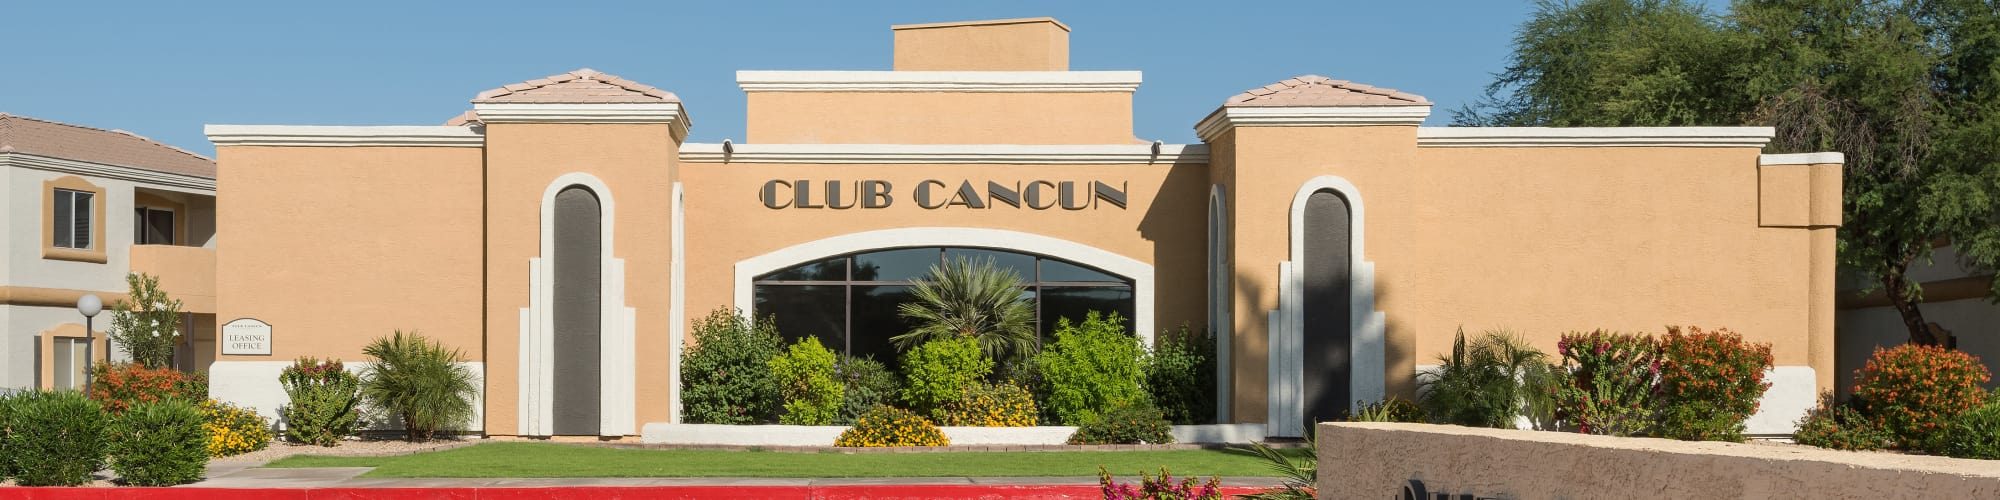 Schedule a tour of Club Cancun in Chandler, Arizona